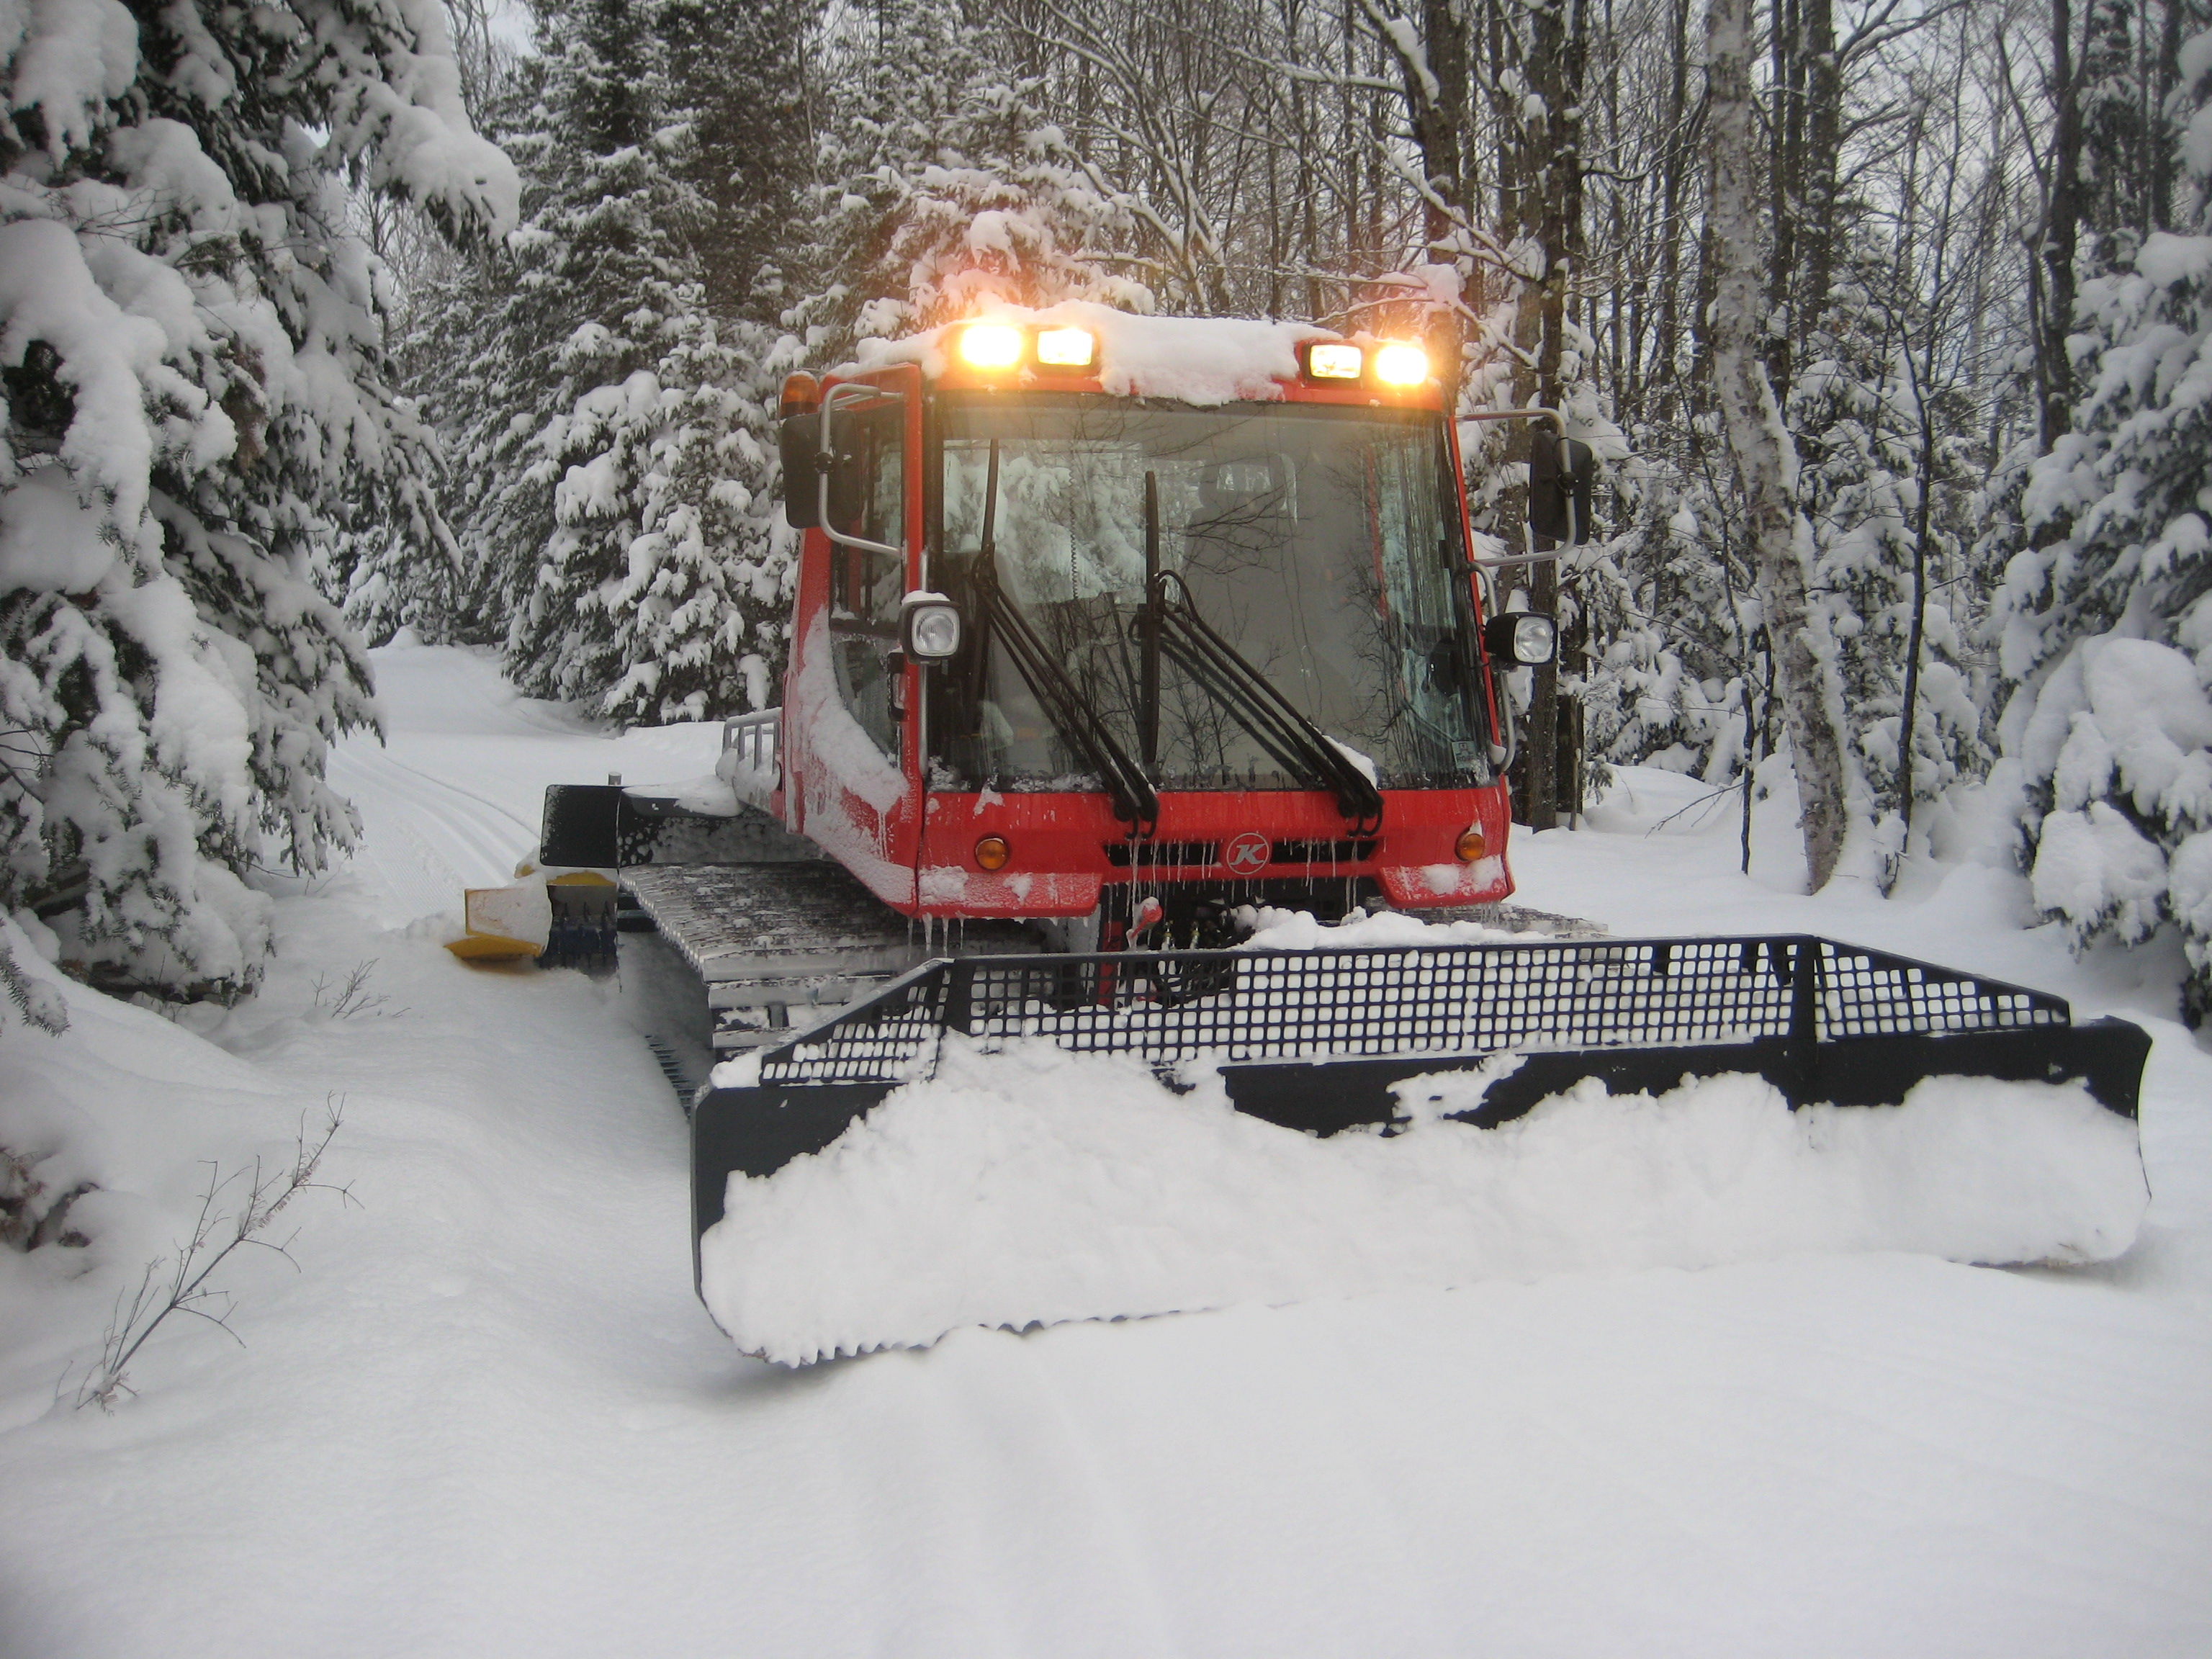 The Pisten Bully doing its magic in Winter Wonderland – ABR Trails